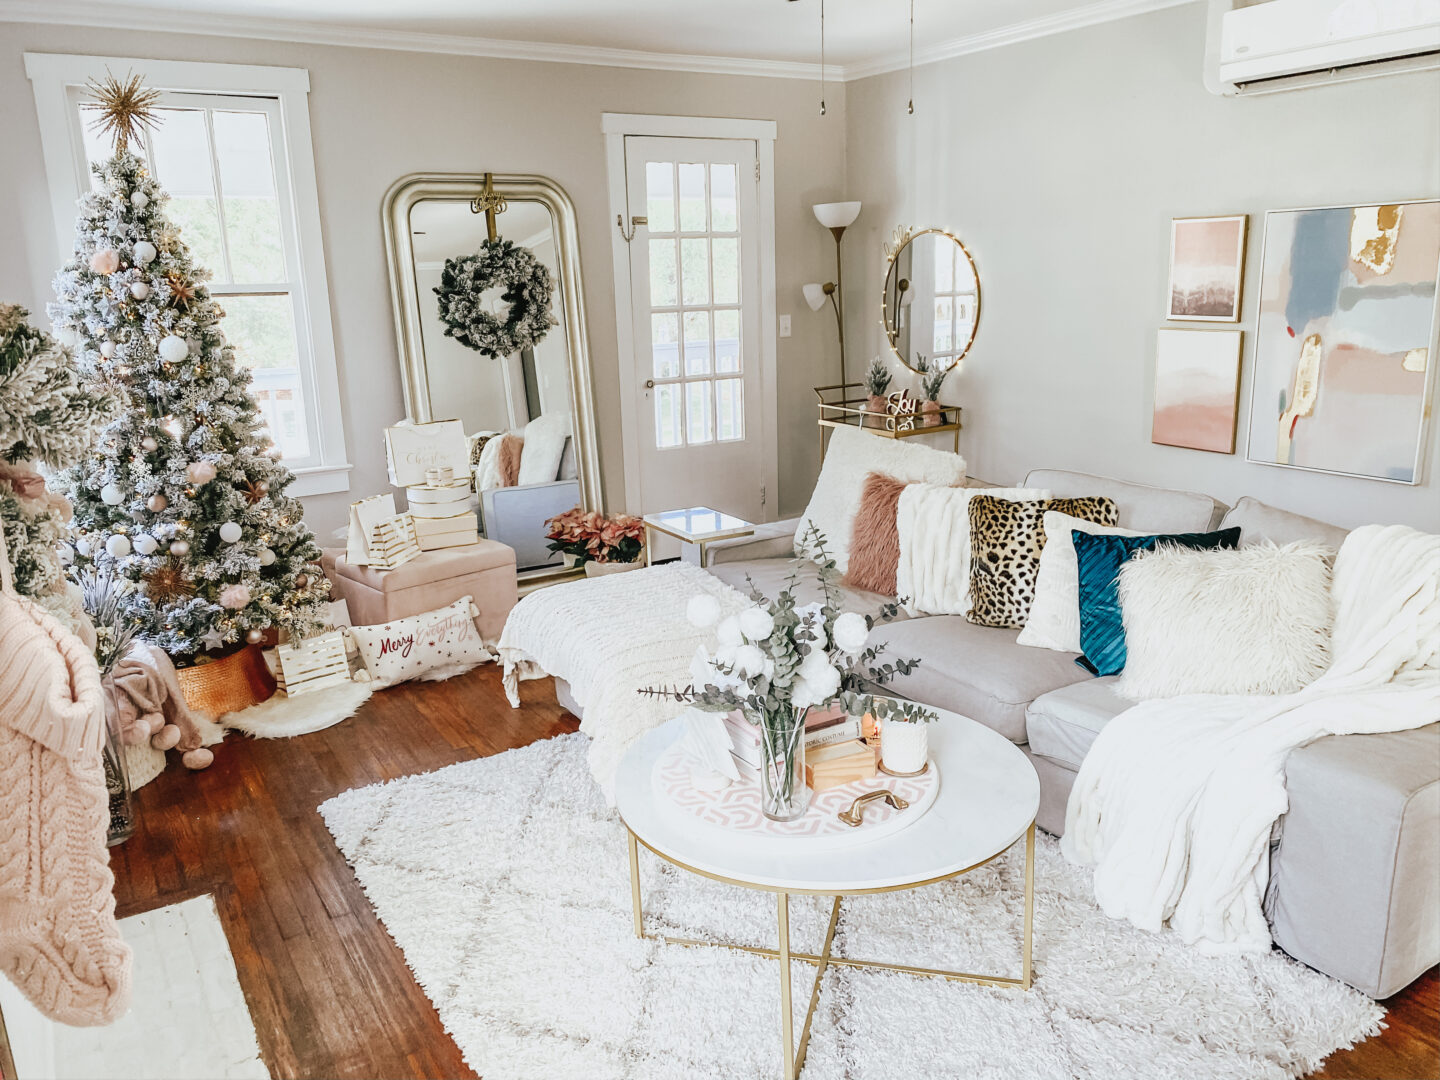 holiday home decor - living room holiday decor